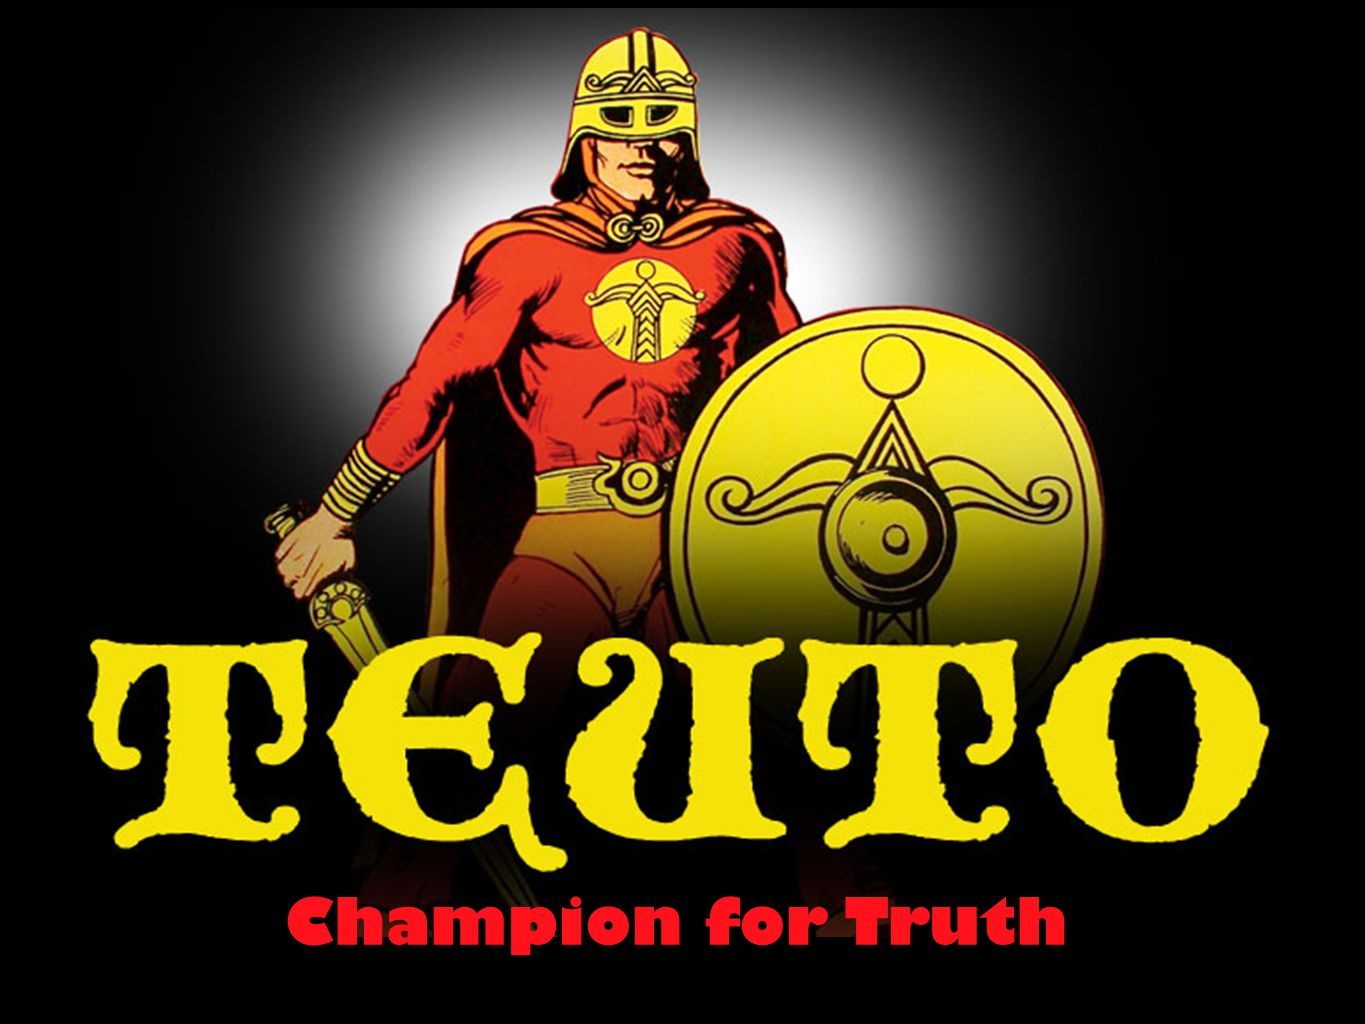 Champion for Truth